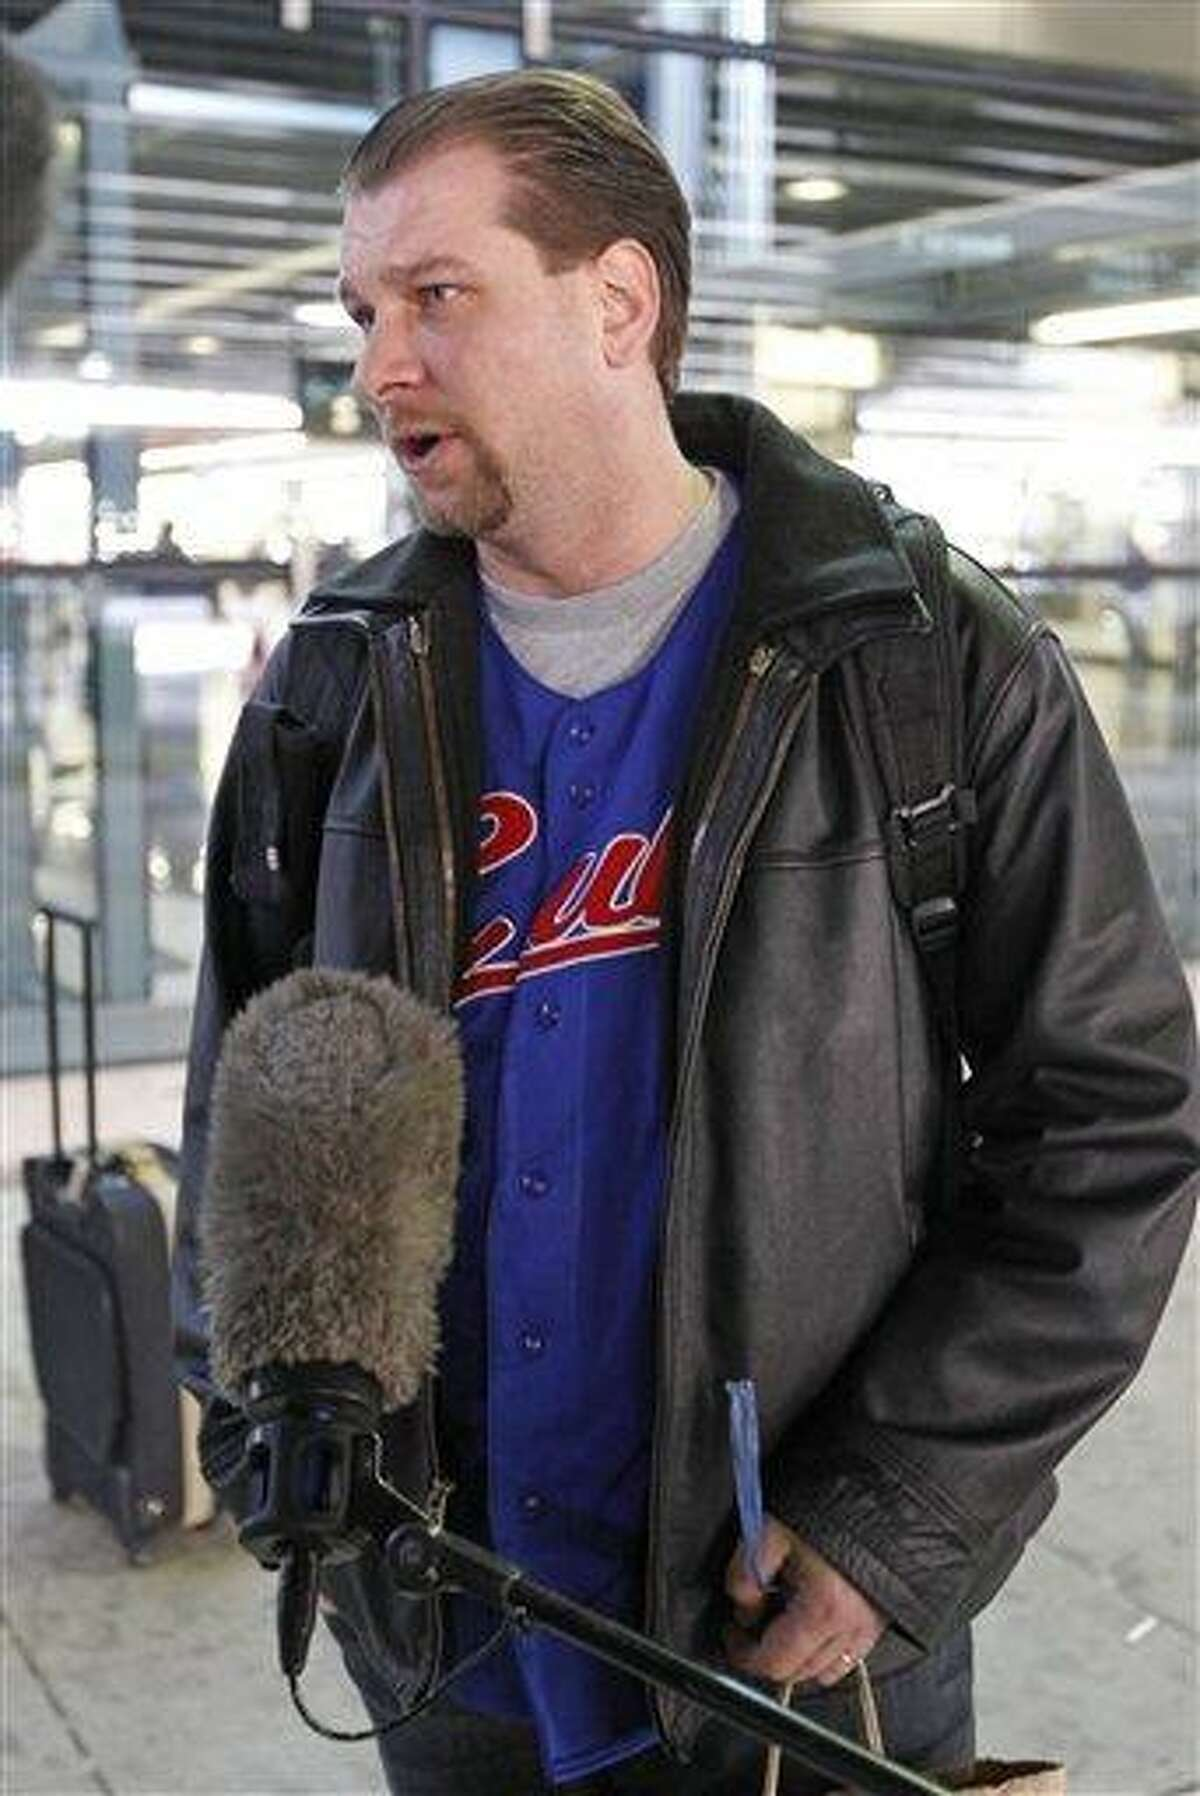 Brad LeClear, a passenger on an American Airlines flight from Dallas to Chicago, talks to reporters upon landing in Chicago, after the flight was disrupted when a flight attendant ranted about the plane crashing Friday. The incident happened while the plane was preparing to take off from Dallas-Fort Worth International Airport. LeClear said he helped restrain the flight attendant, who he said acted oddly and mentioned something about the Sept. 11, 2001, attacks. Associated Press